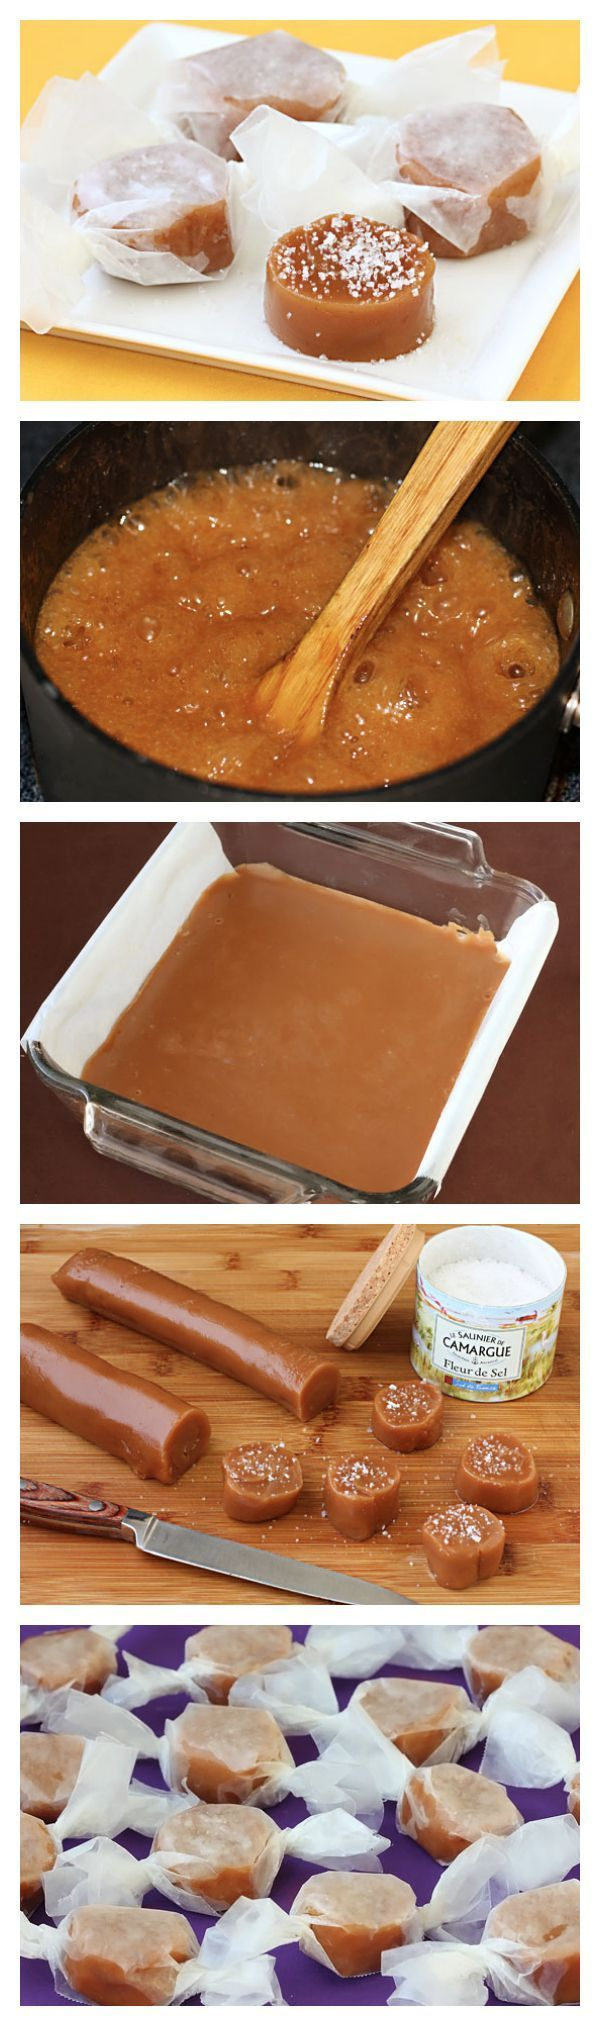 Fleur de Sel Caramels - Grab your candy thermometer (or run out and buy one) and give these babies a try!  Better than anything you can get at the store. |  Gimme Some Oven